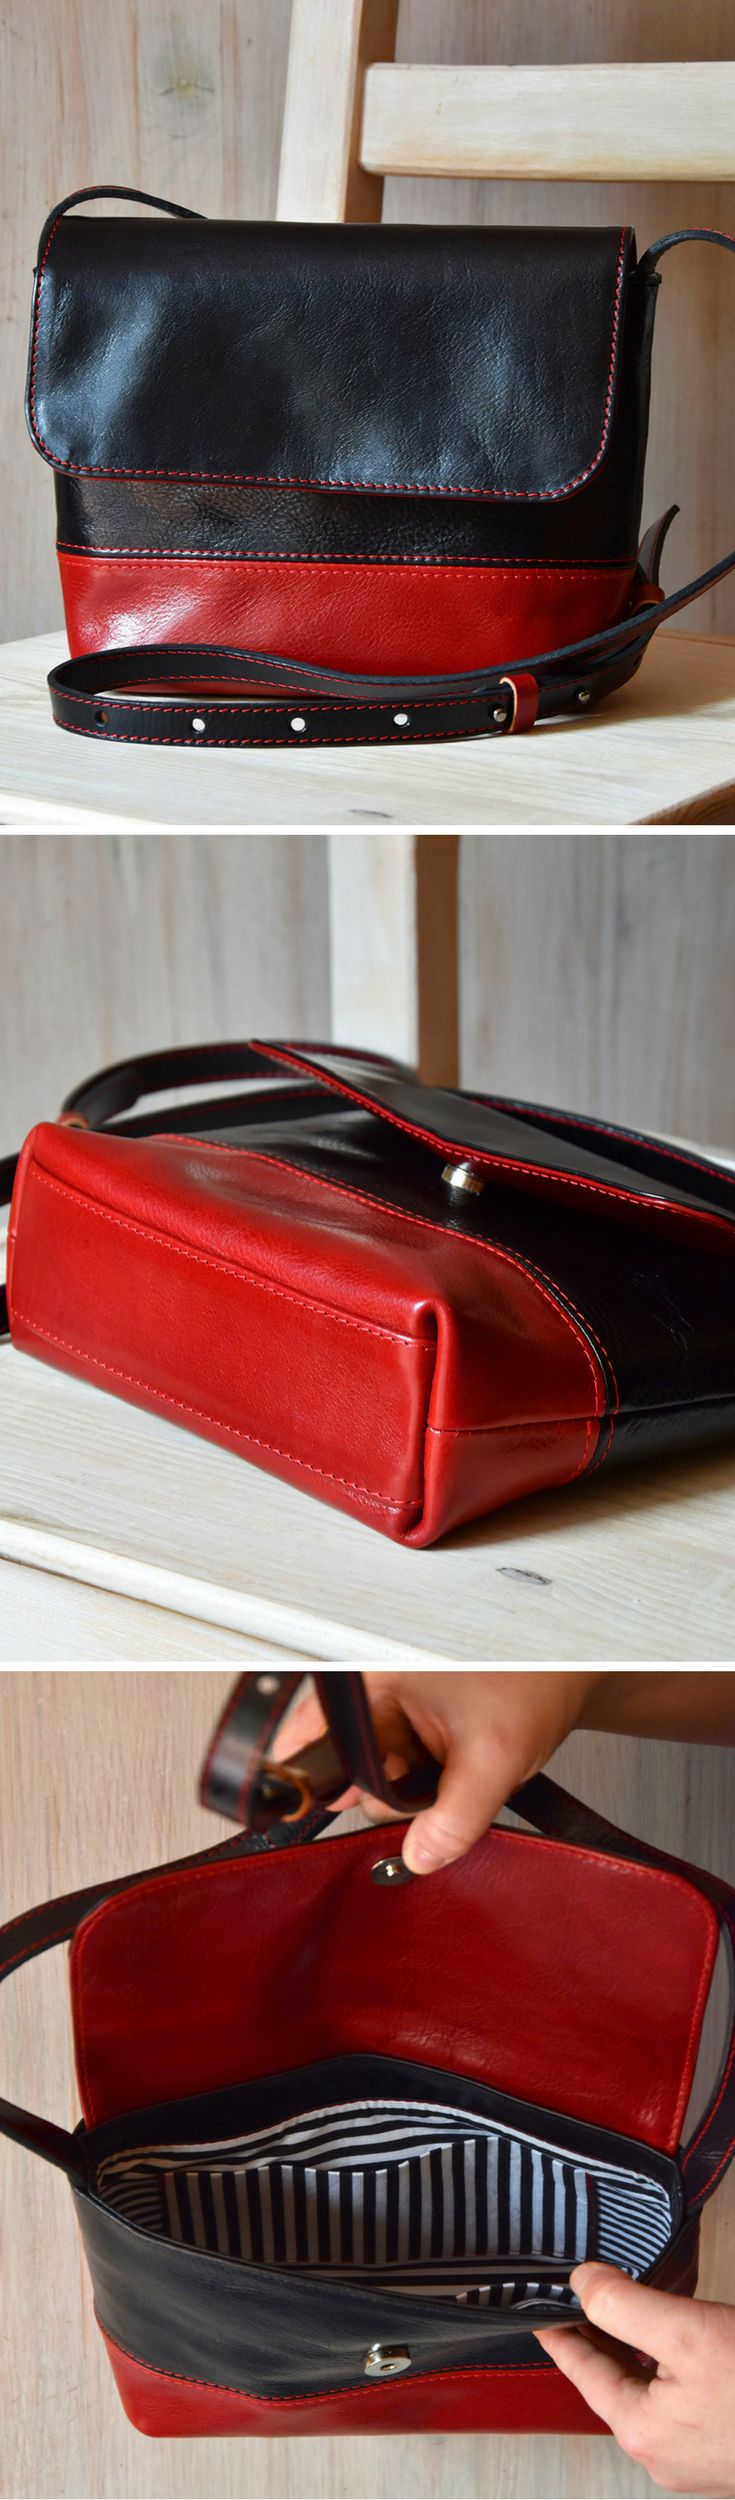 Black and red combination. Handmade leather shoulder bag.